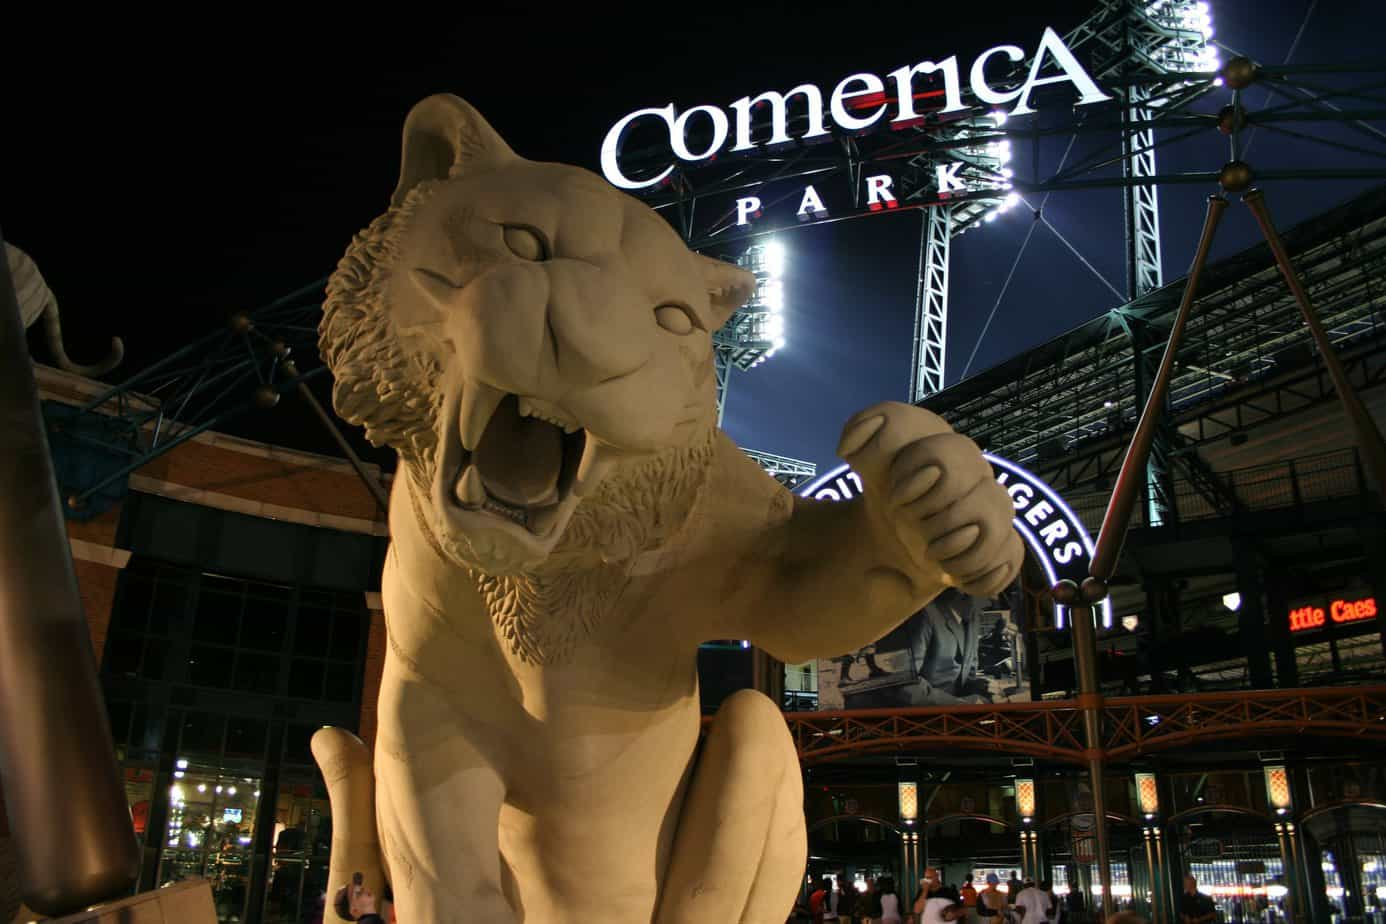 Night at Comerica Park